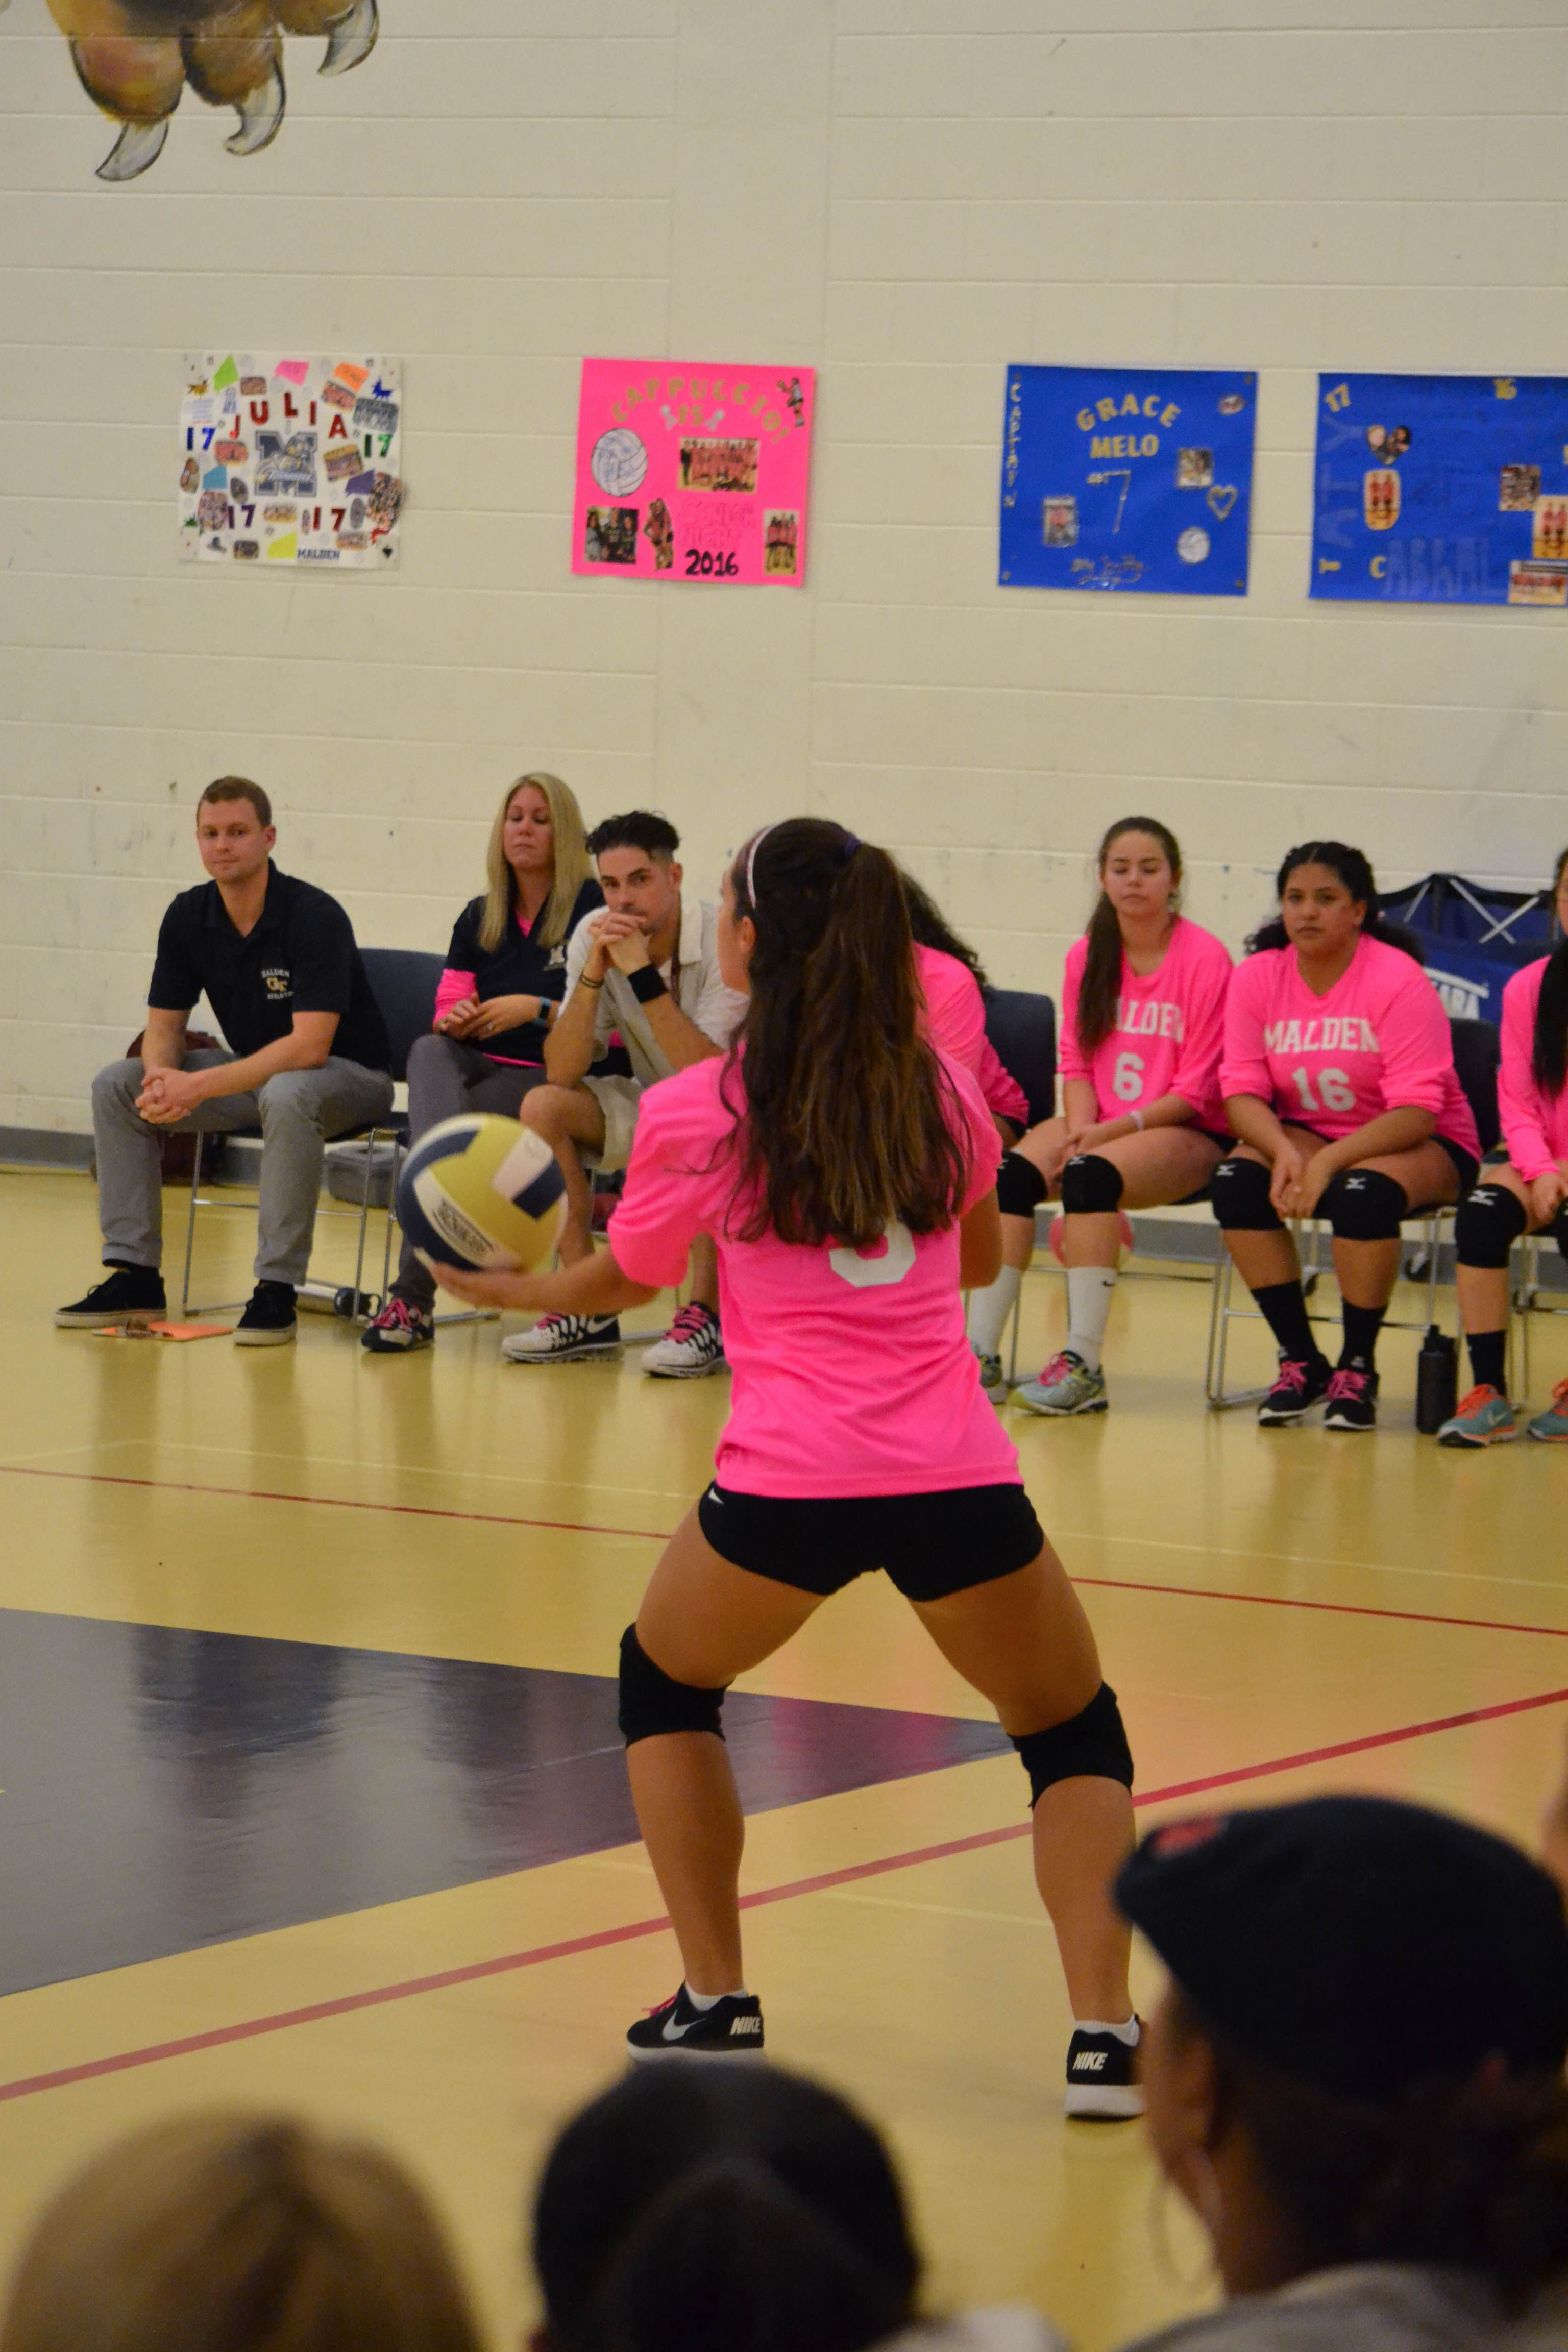 Senior Reanna Pinheiro getting ready to serve. Photo submitted by Daisy Depina.